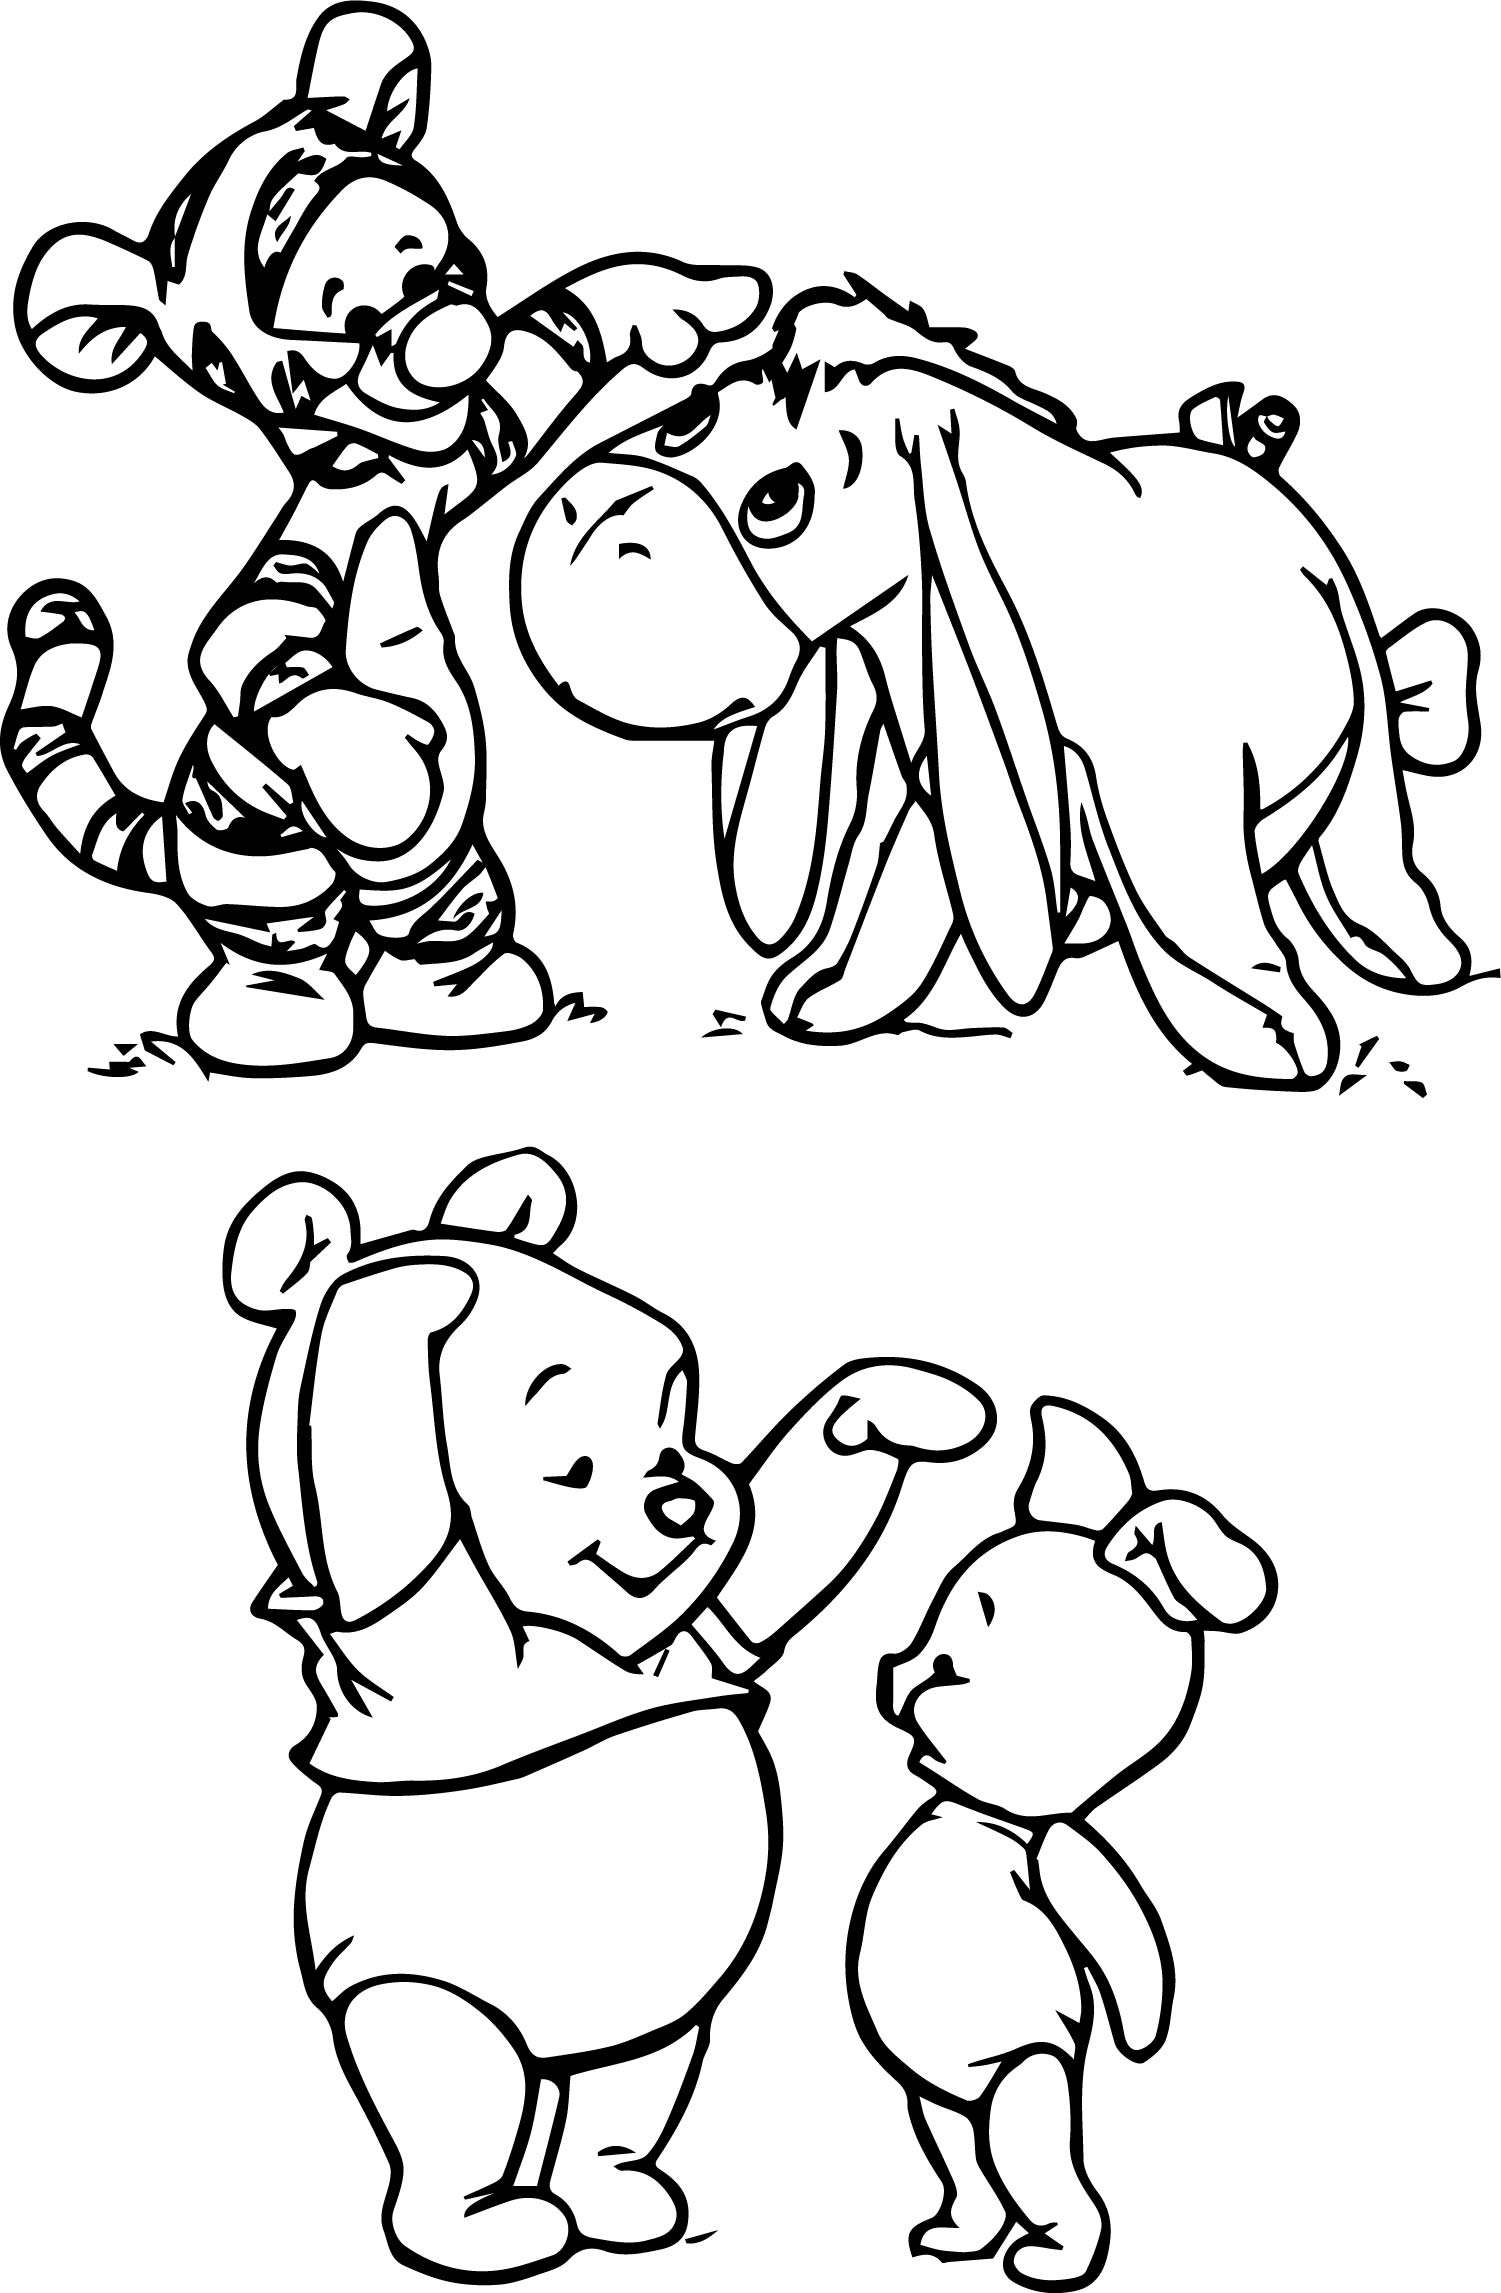 WinniethePooh  Characters  TV Tropes